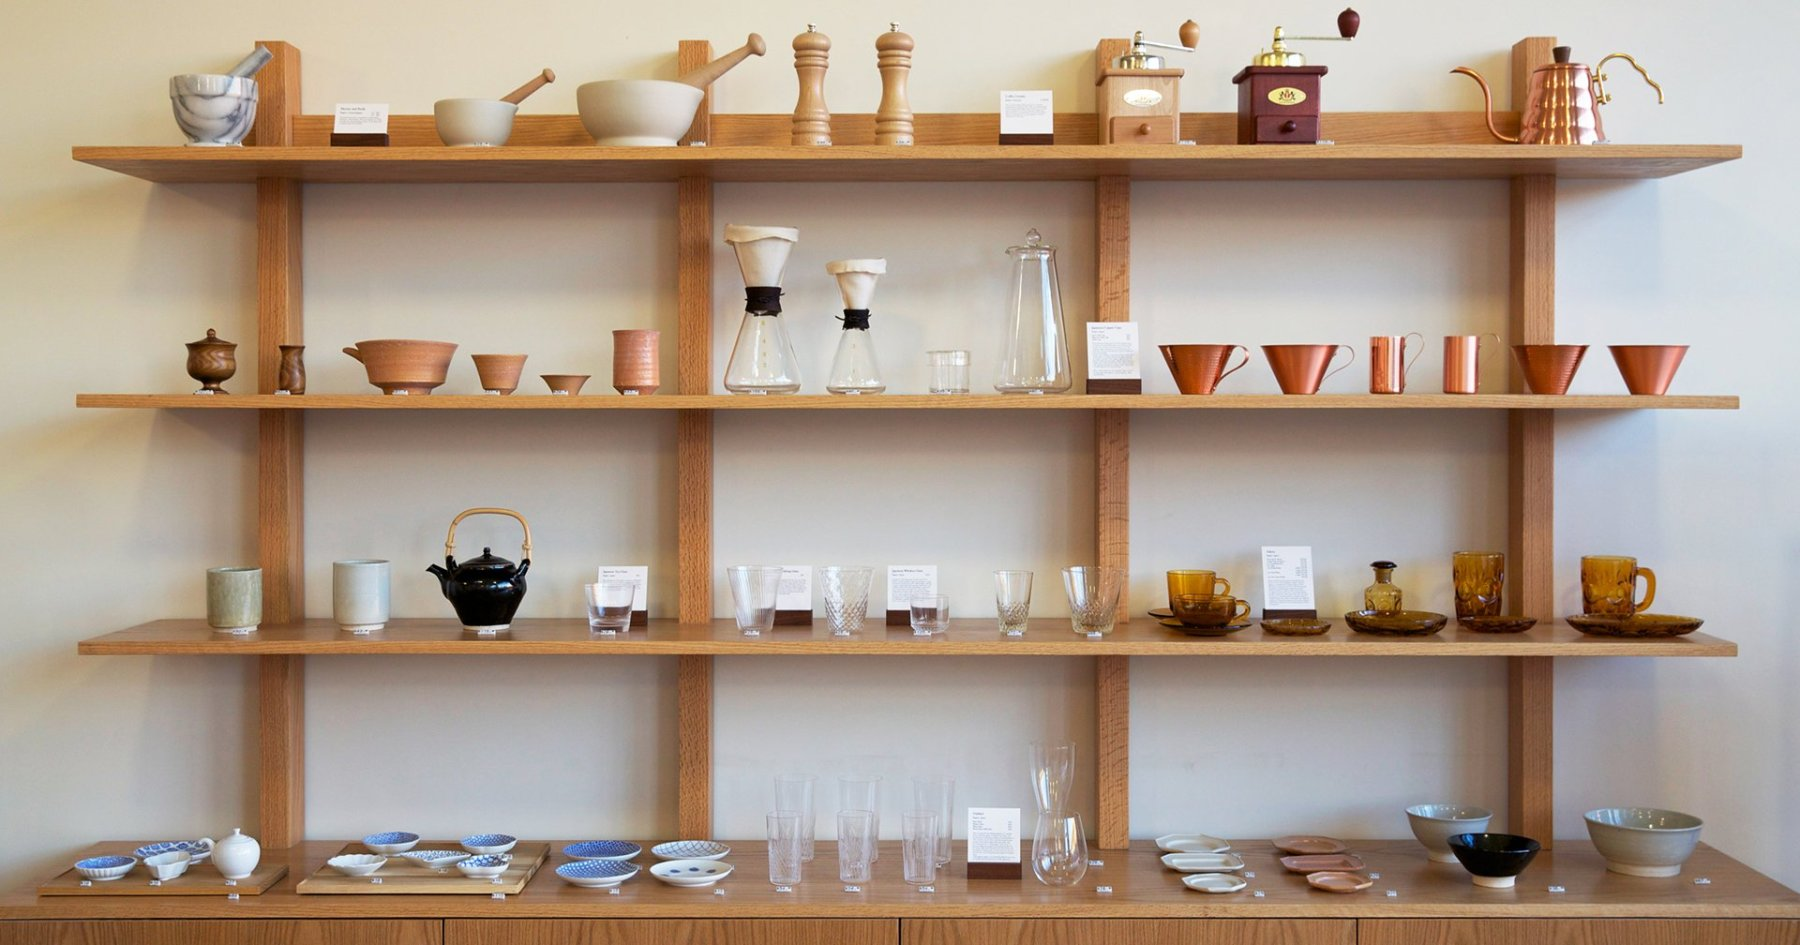 The Good Liver Sells Rare, Wordly Home Goods in the Arts District